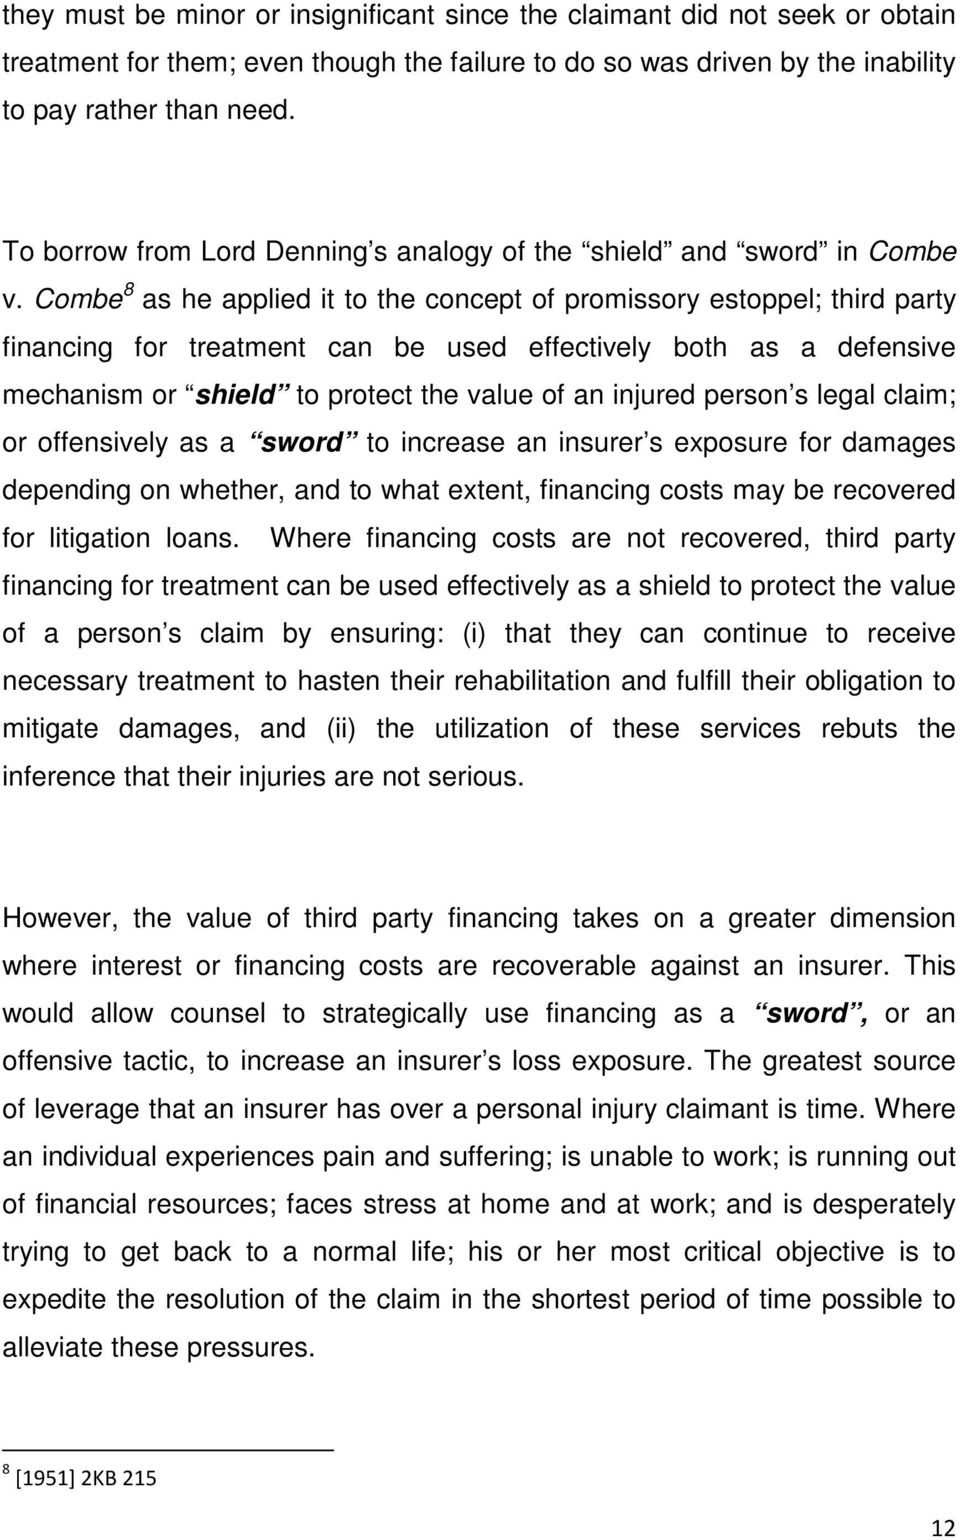 Combe 8 as he applied it to the concept of promissory estoppel; third party financing for treatment can be used effectively both as a defensive mechanism or shield to protect the value of an injured